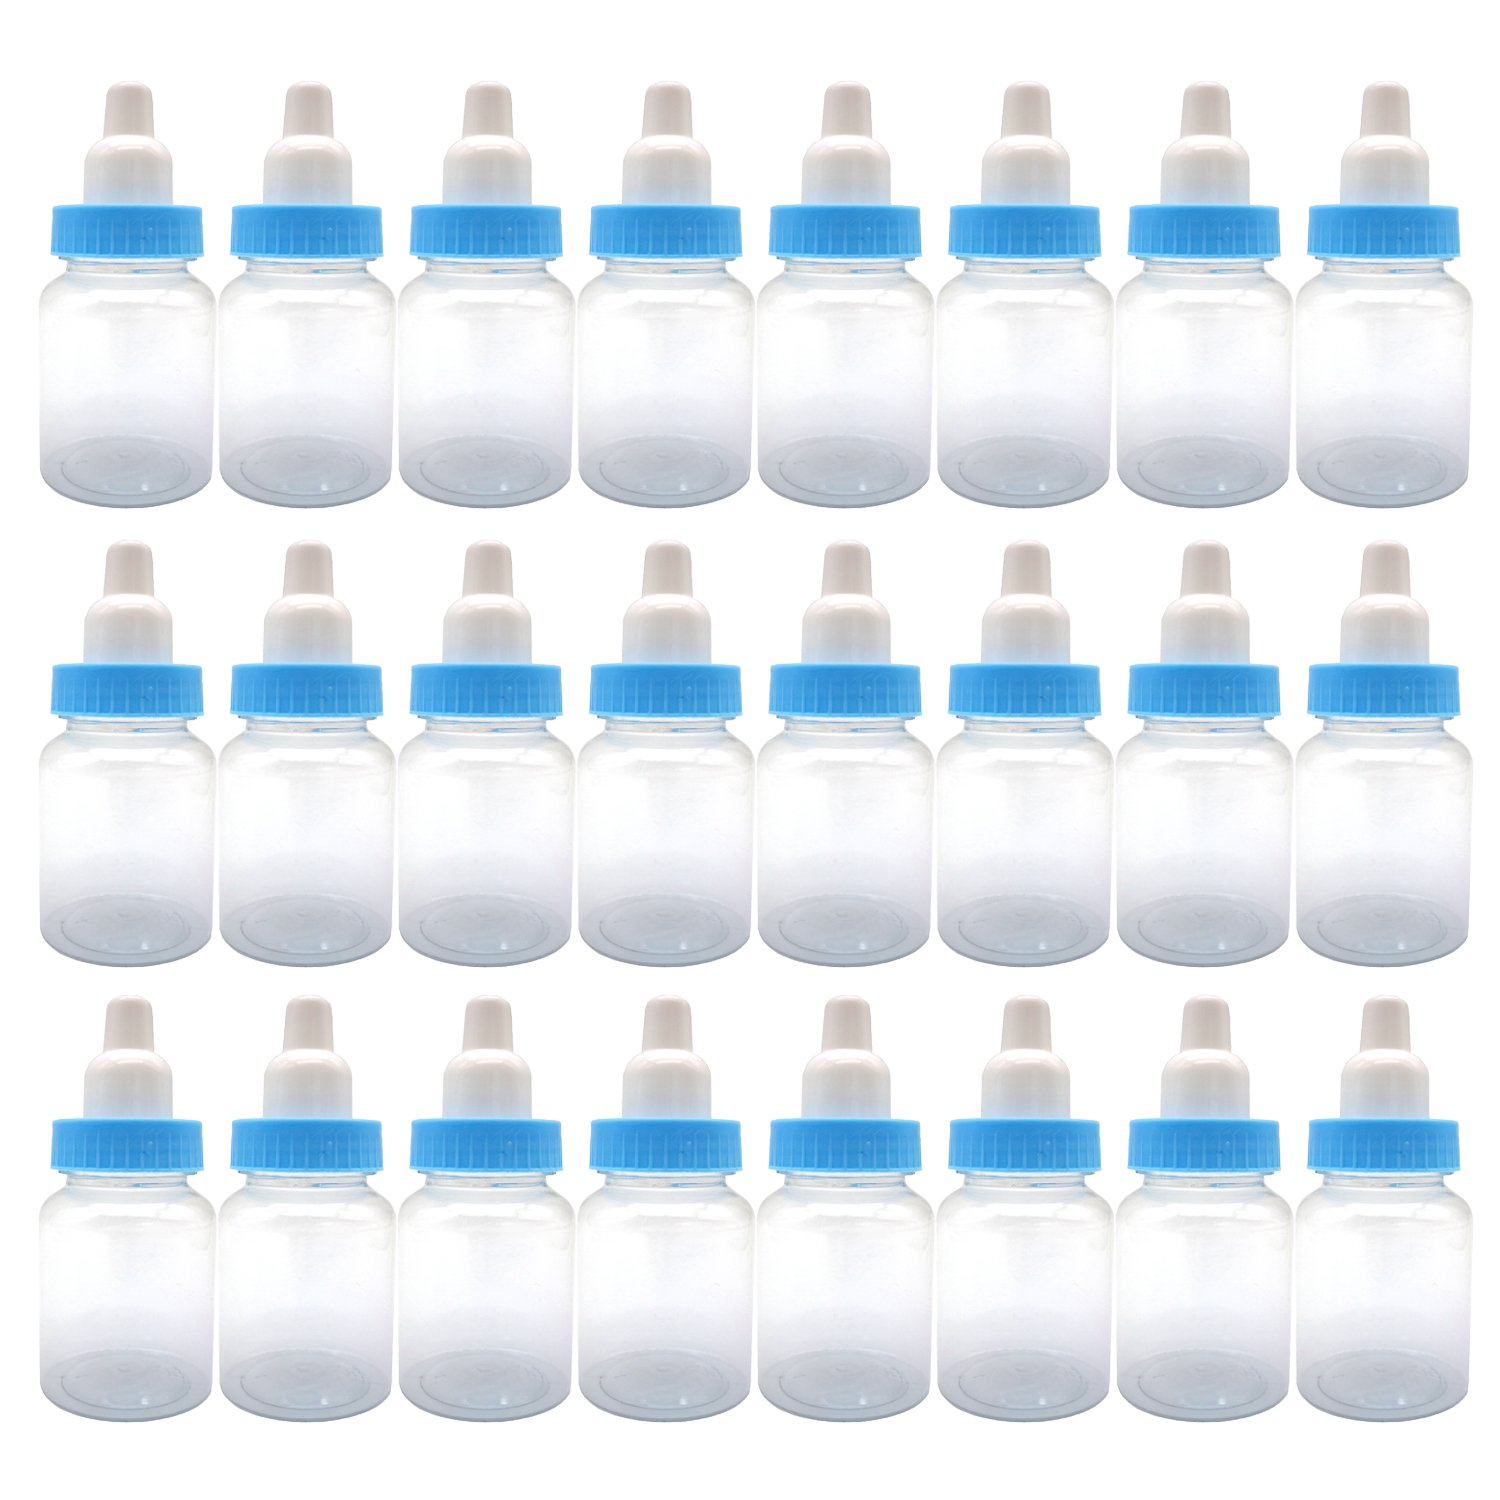 3.5-Inches Baby Bottle Shower Favor,Mini plastic candy bottle,Baby shower supplies Boy girl newborn baby baptism birthday party decor,blue(Pack of 24)